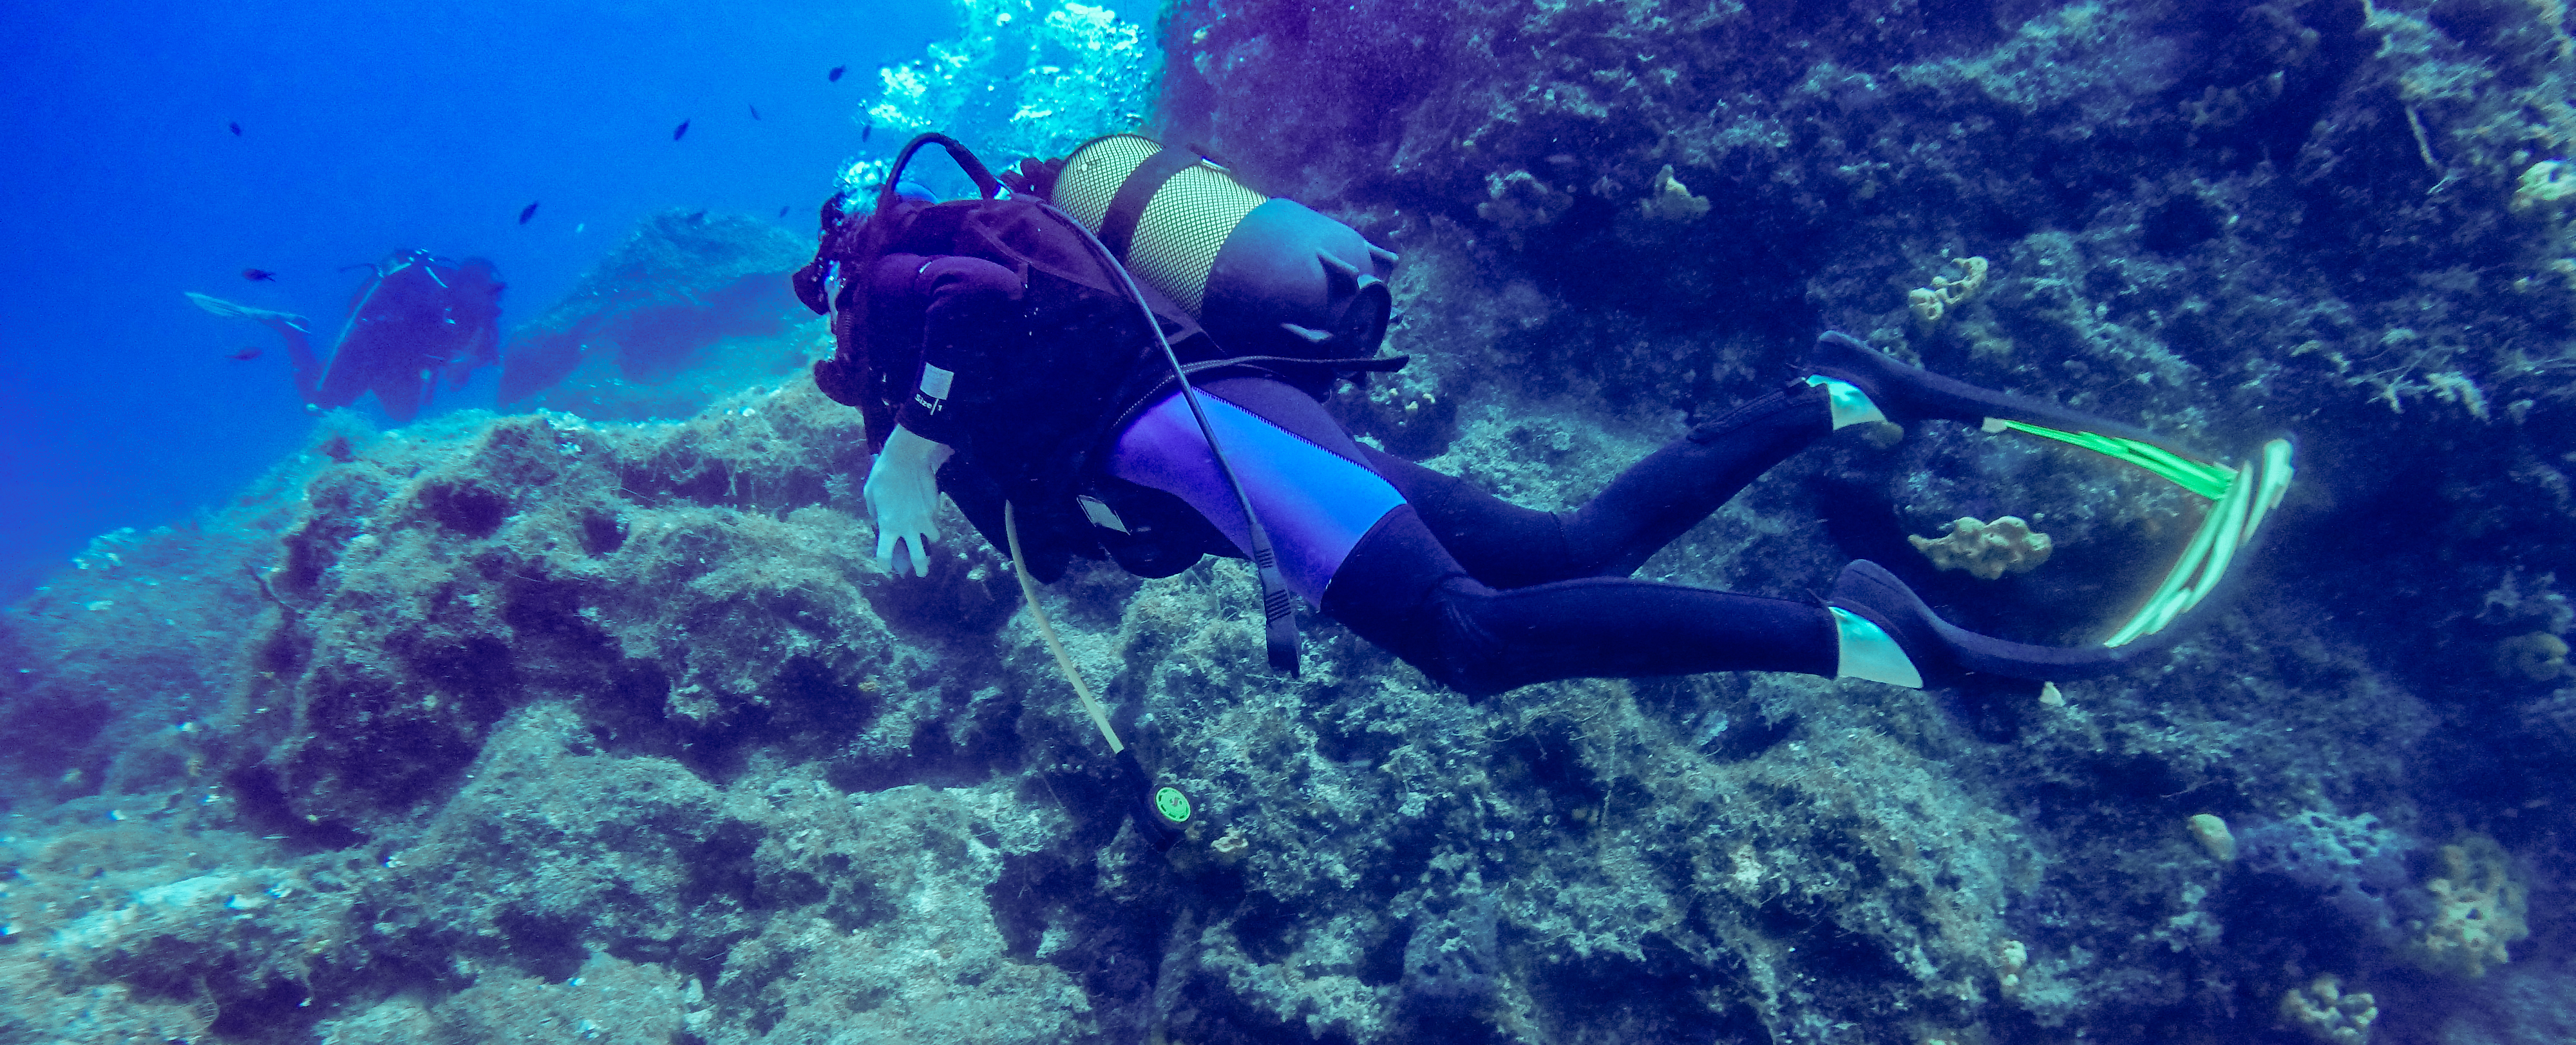 an essay on the benefits of scuba diving Top 10 health benefits of scuba diving if you have just started diving or you are an experienced diver, diving has many benefits to offer.